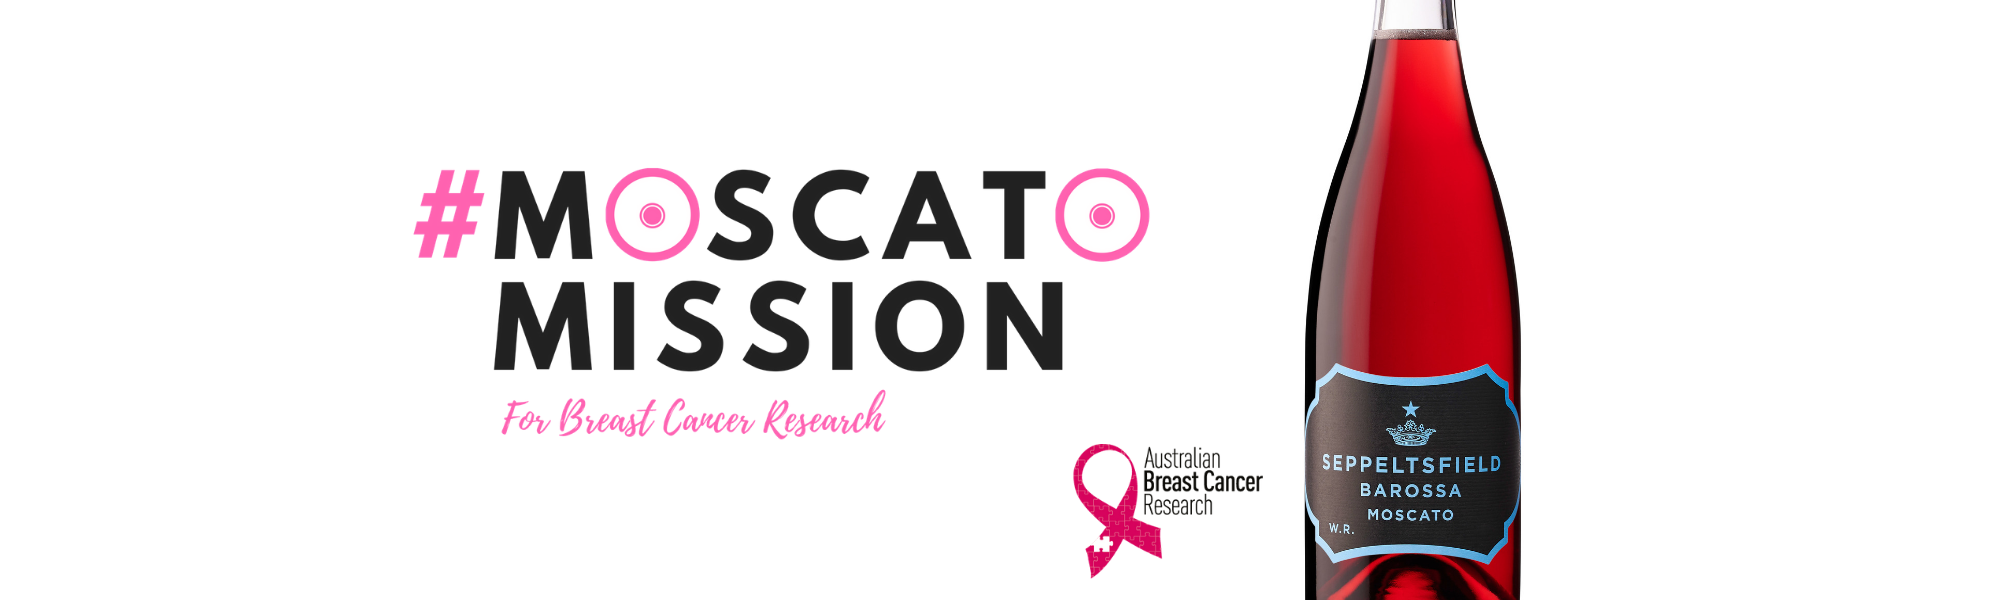 Moscato Mission Latest News